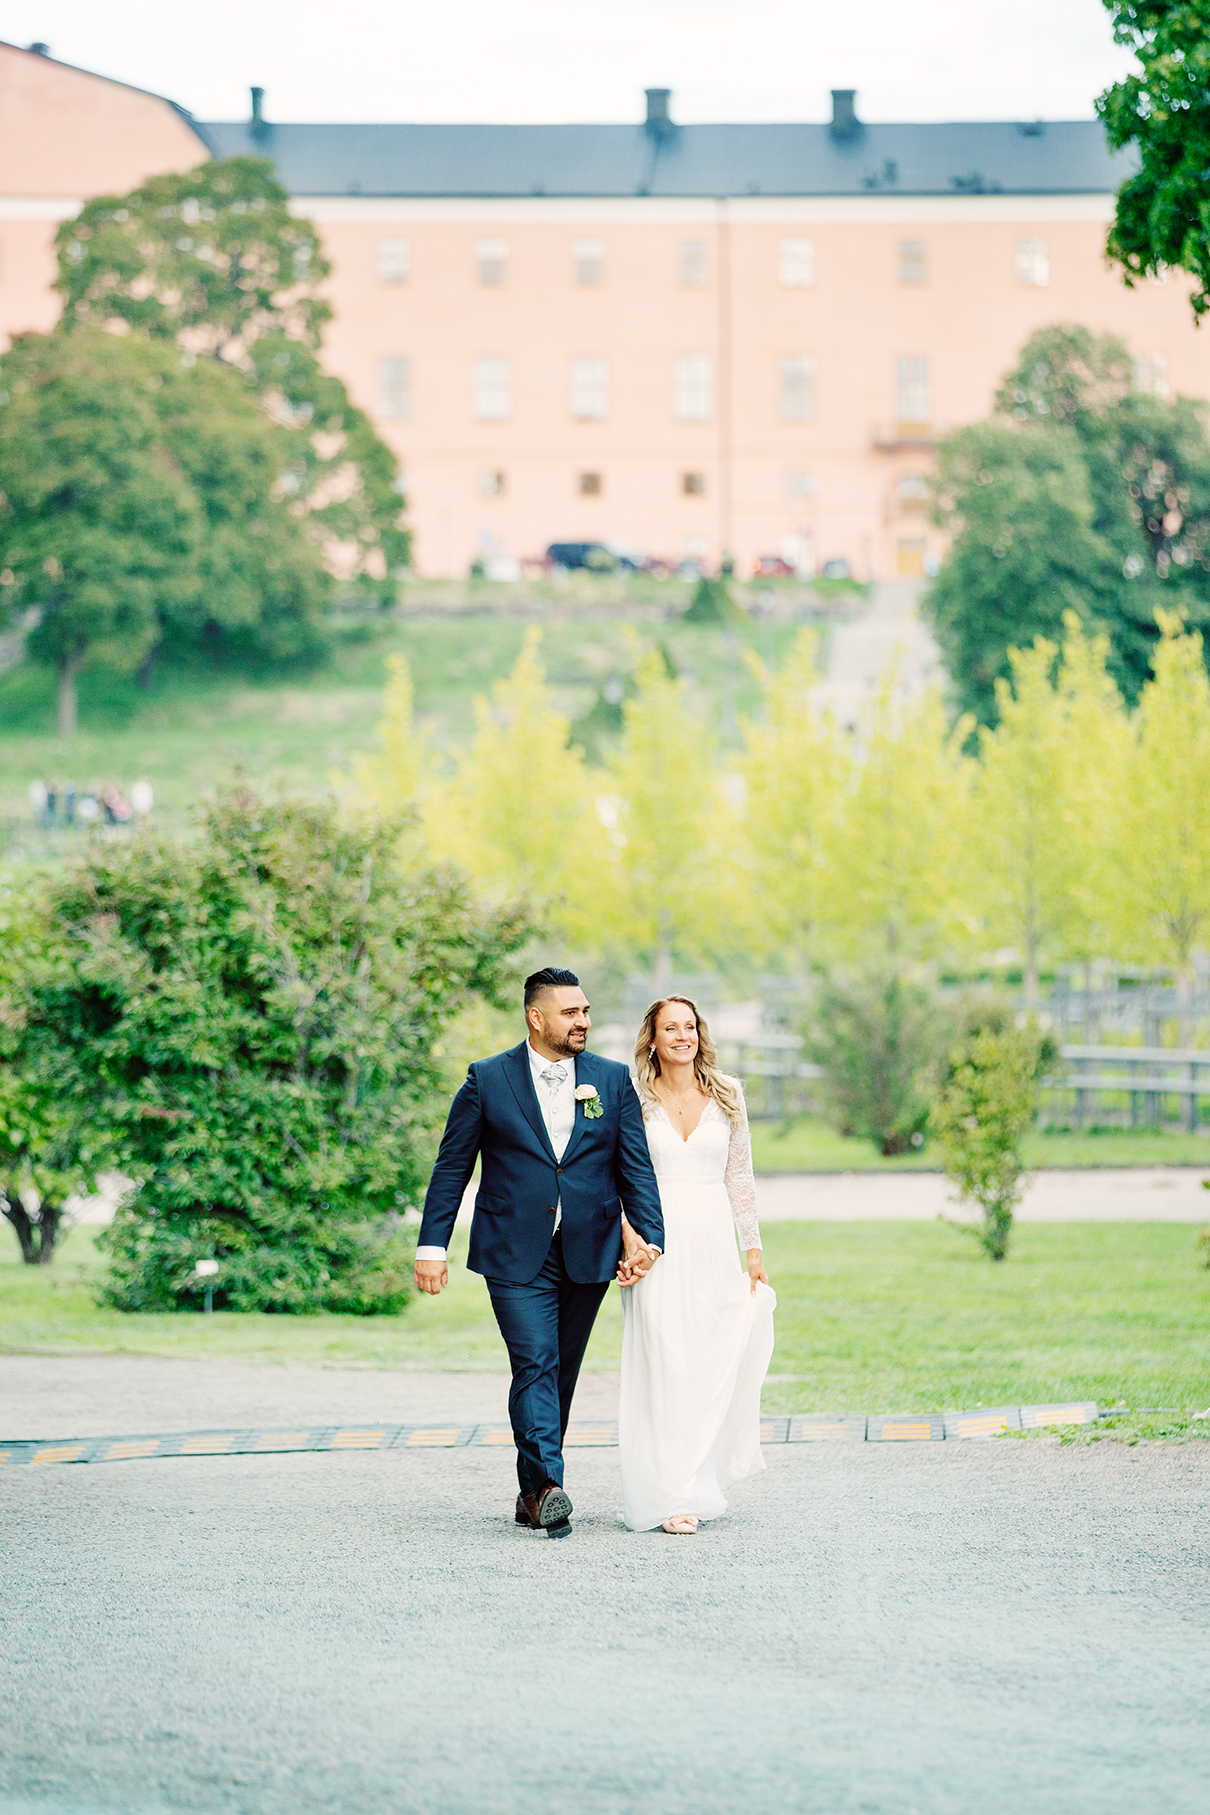 Uppsala_wedding_21_2.jpg